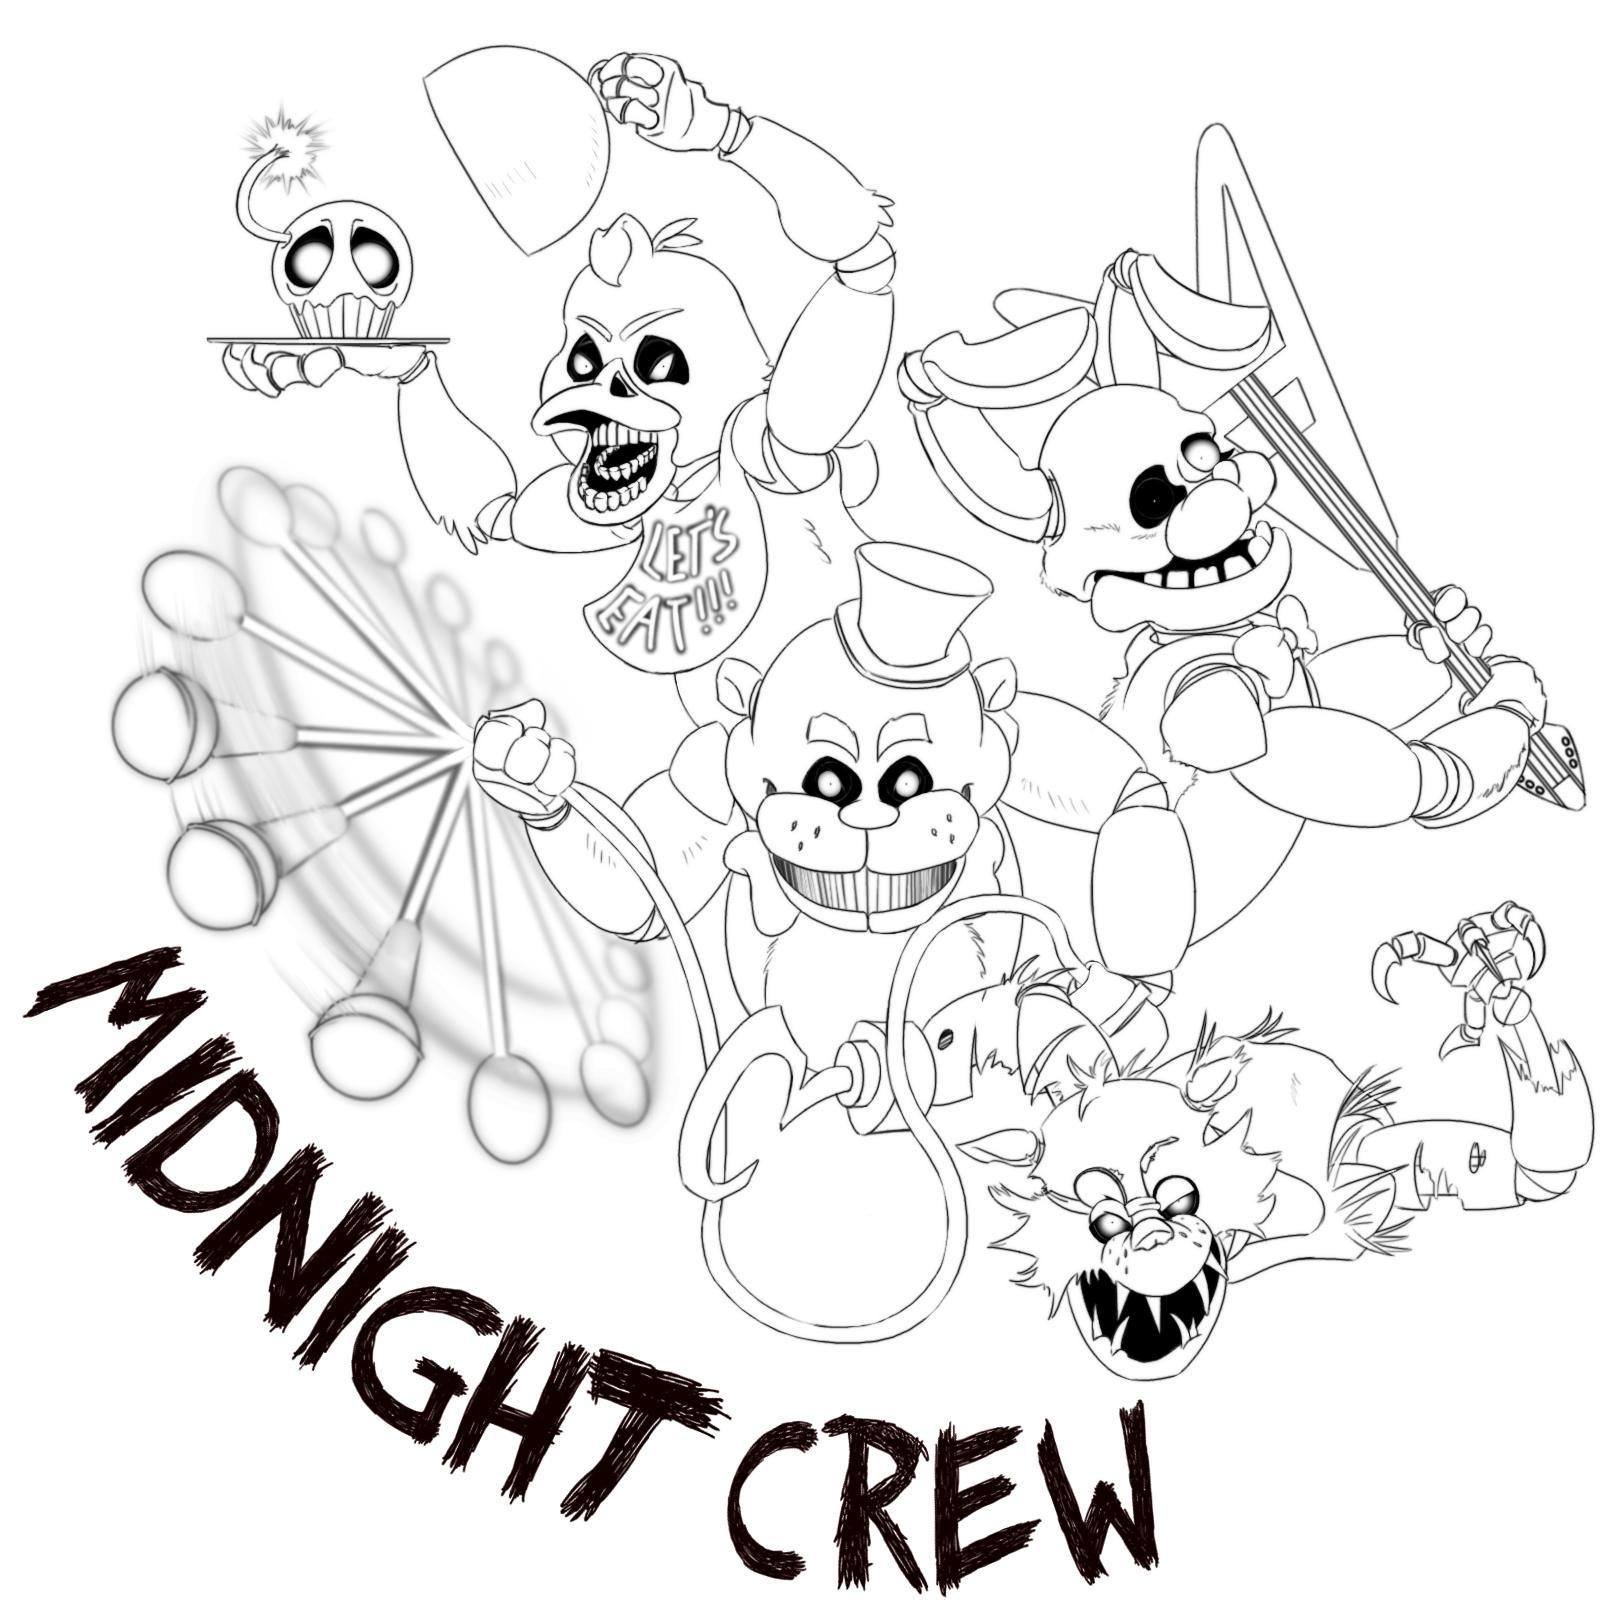 Five Nights At Freddy S Coloring Pages Bonnie - Coloring Page Five ... | 1616x1620